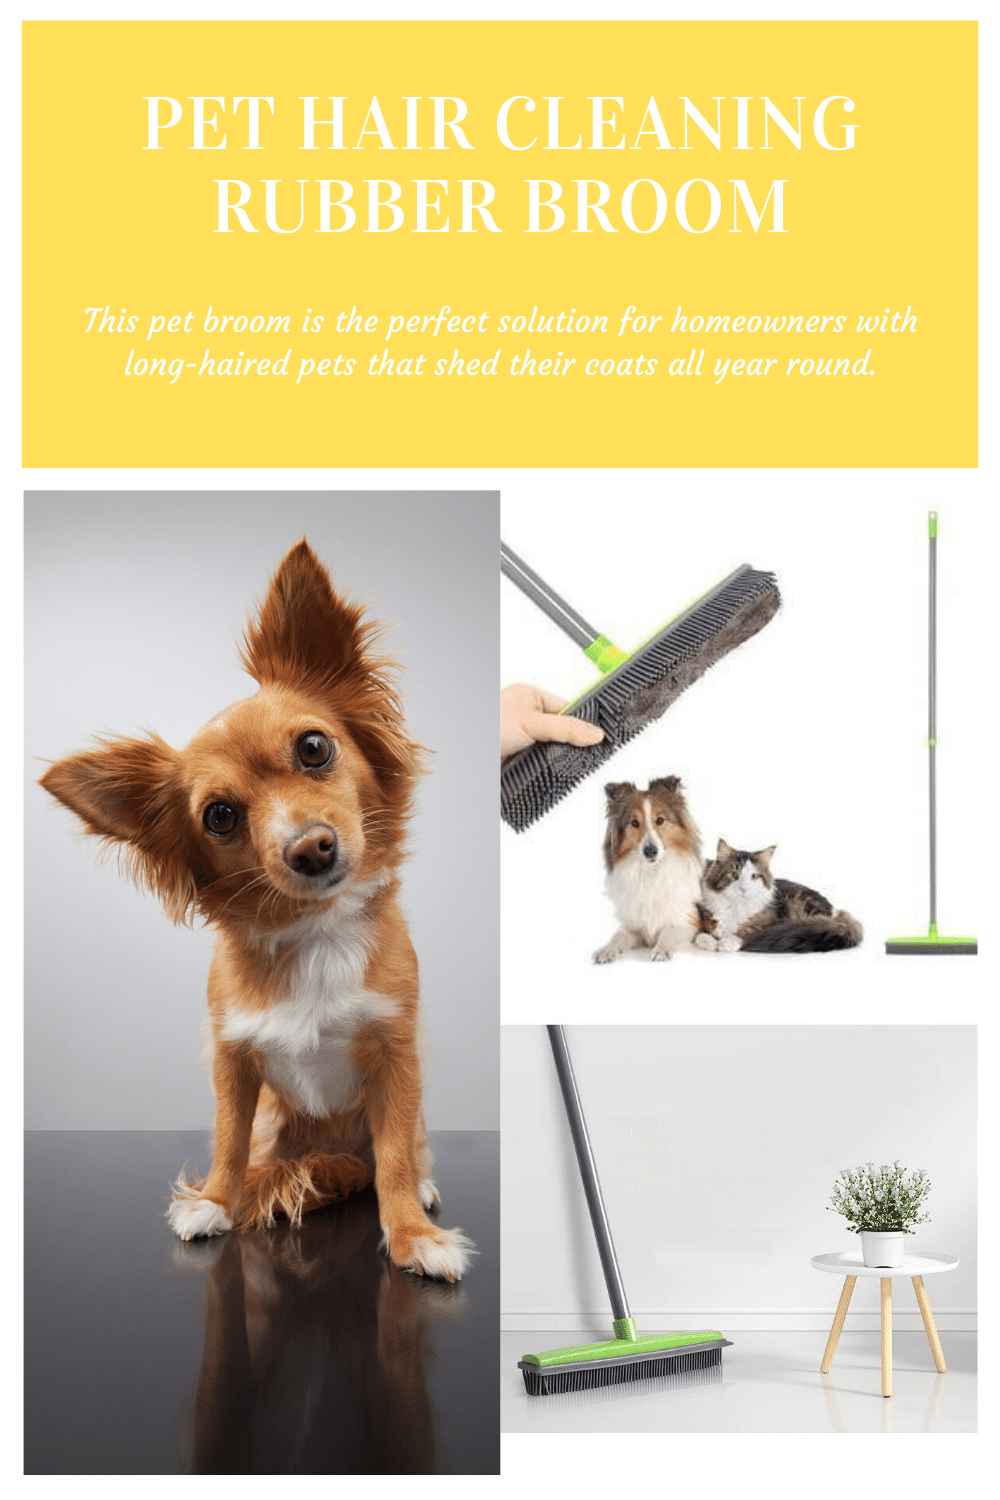 DO YOU STRUGGLE WITH PET HAIR ALL OVER YOUR HOUSE? The Pet